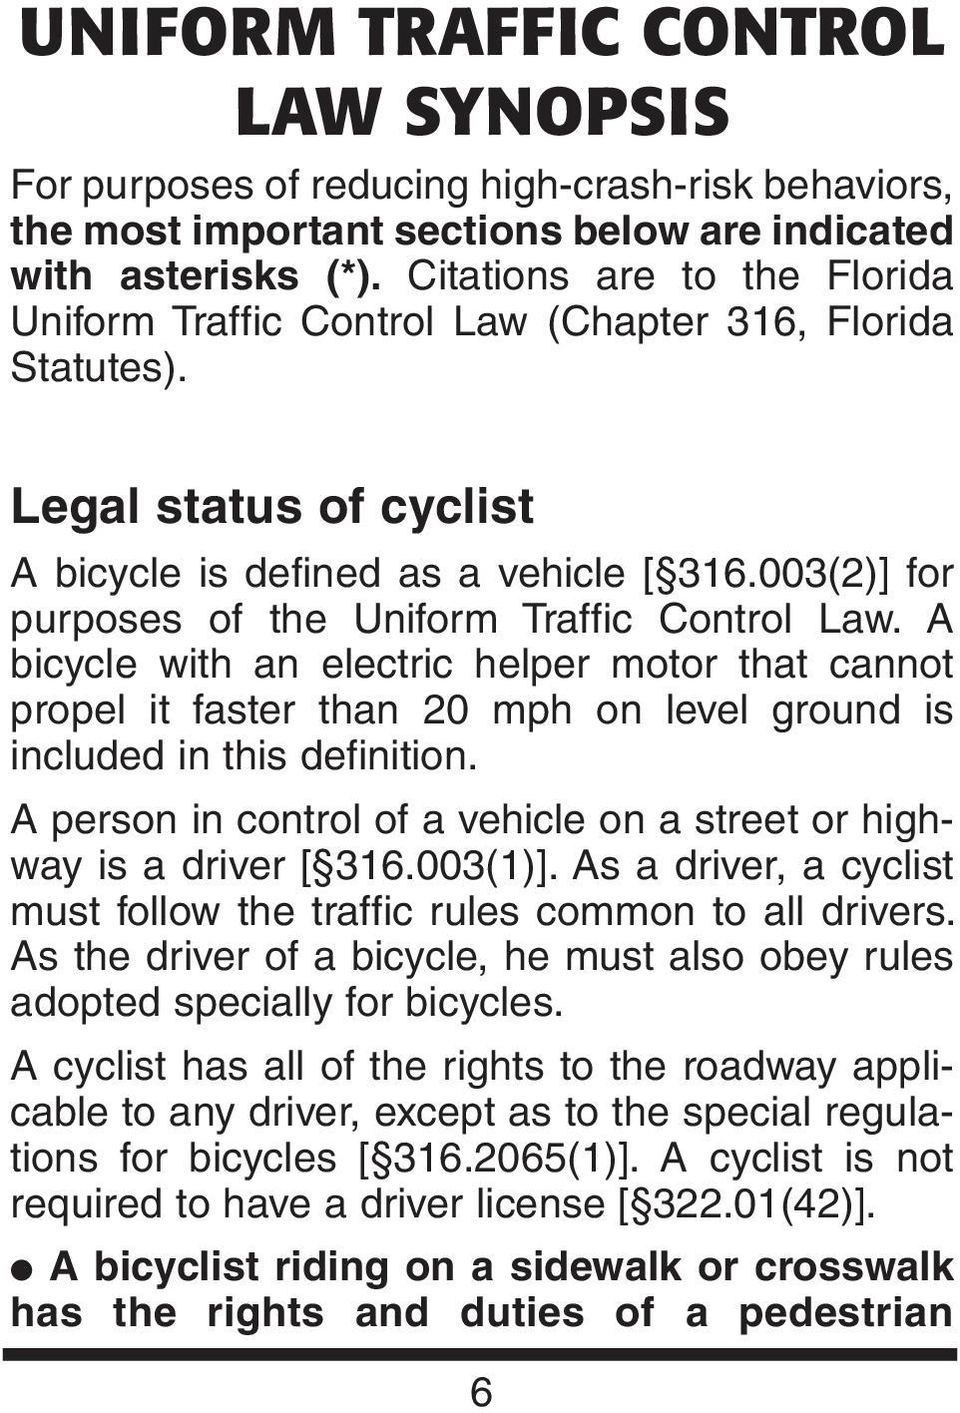 003(2)] for purposes of the Uniform Traffic Control Law. A bicycle with an electric helper motor that cannot propel it faster than 20 mph on level ground is included in this definition.